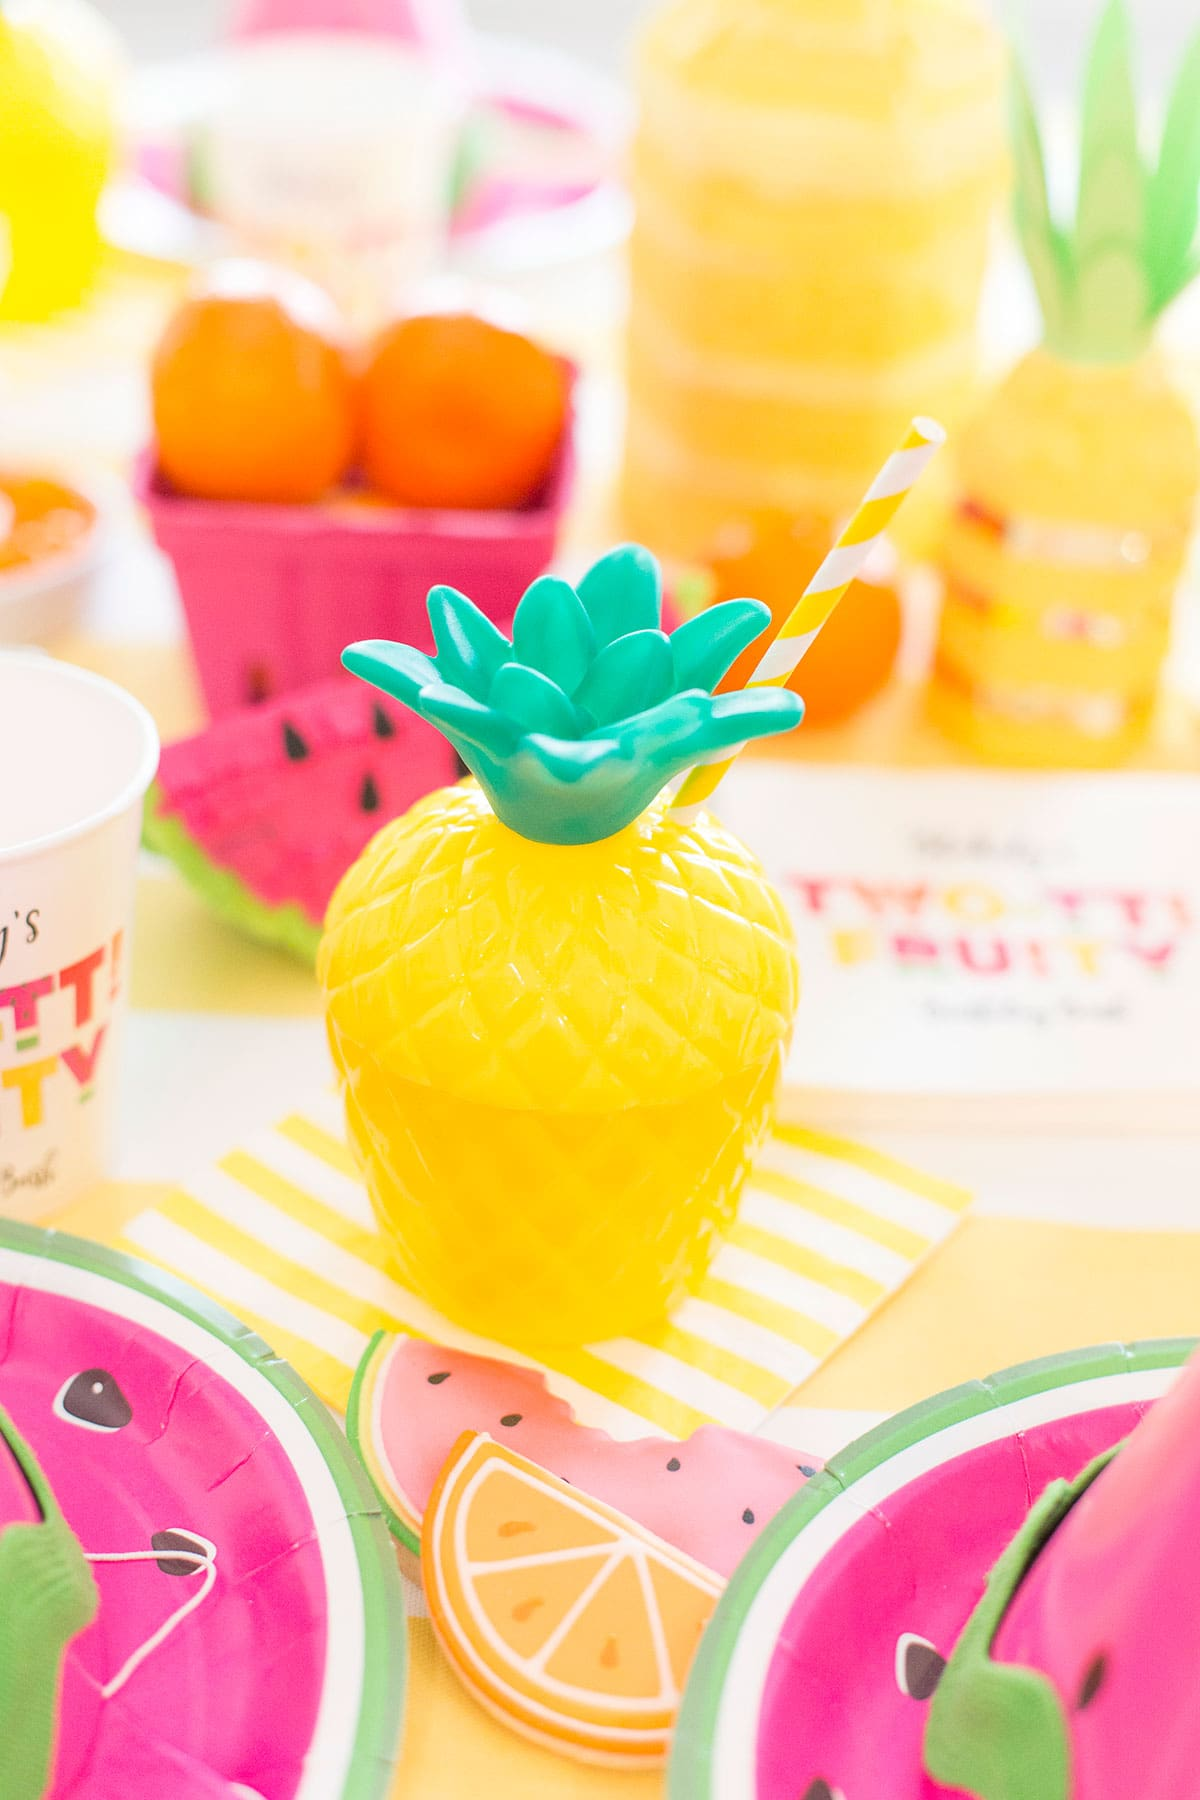 Pineapple Party Cup for Two-tti Fruity Party!